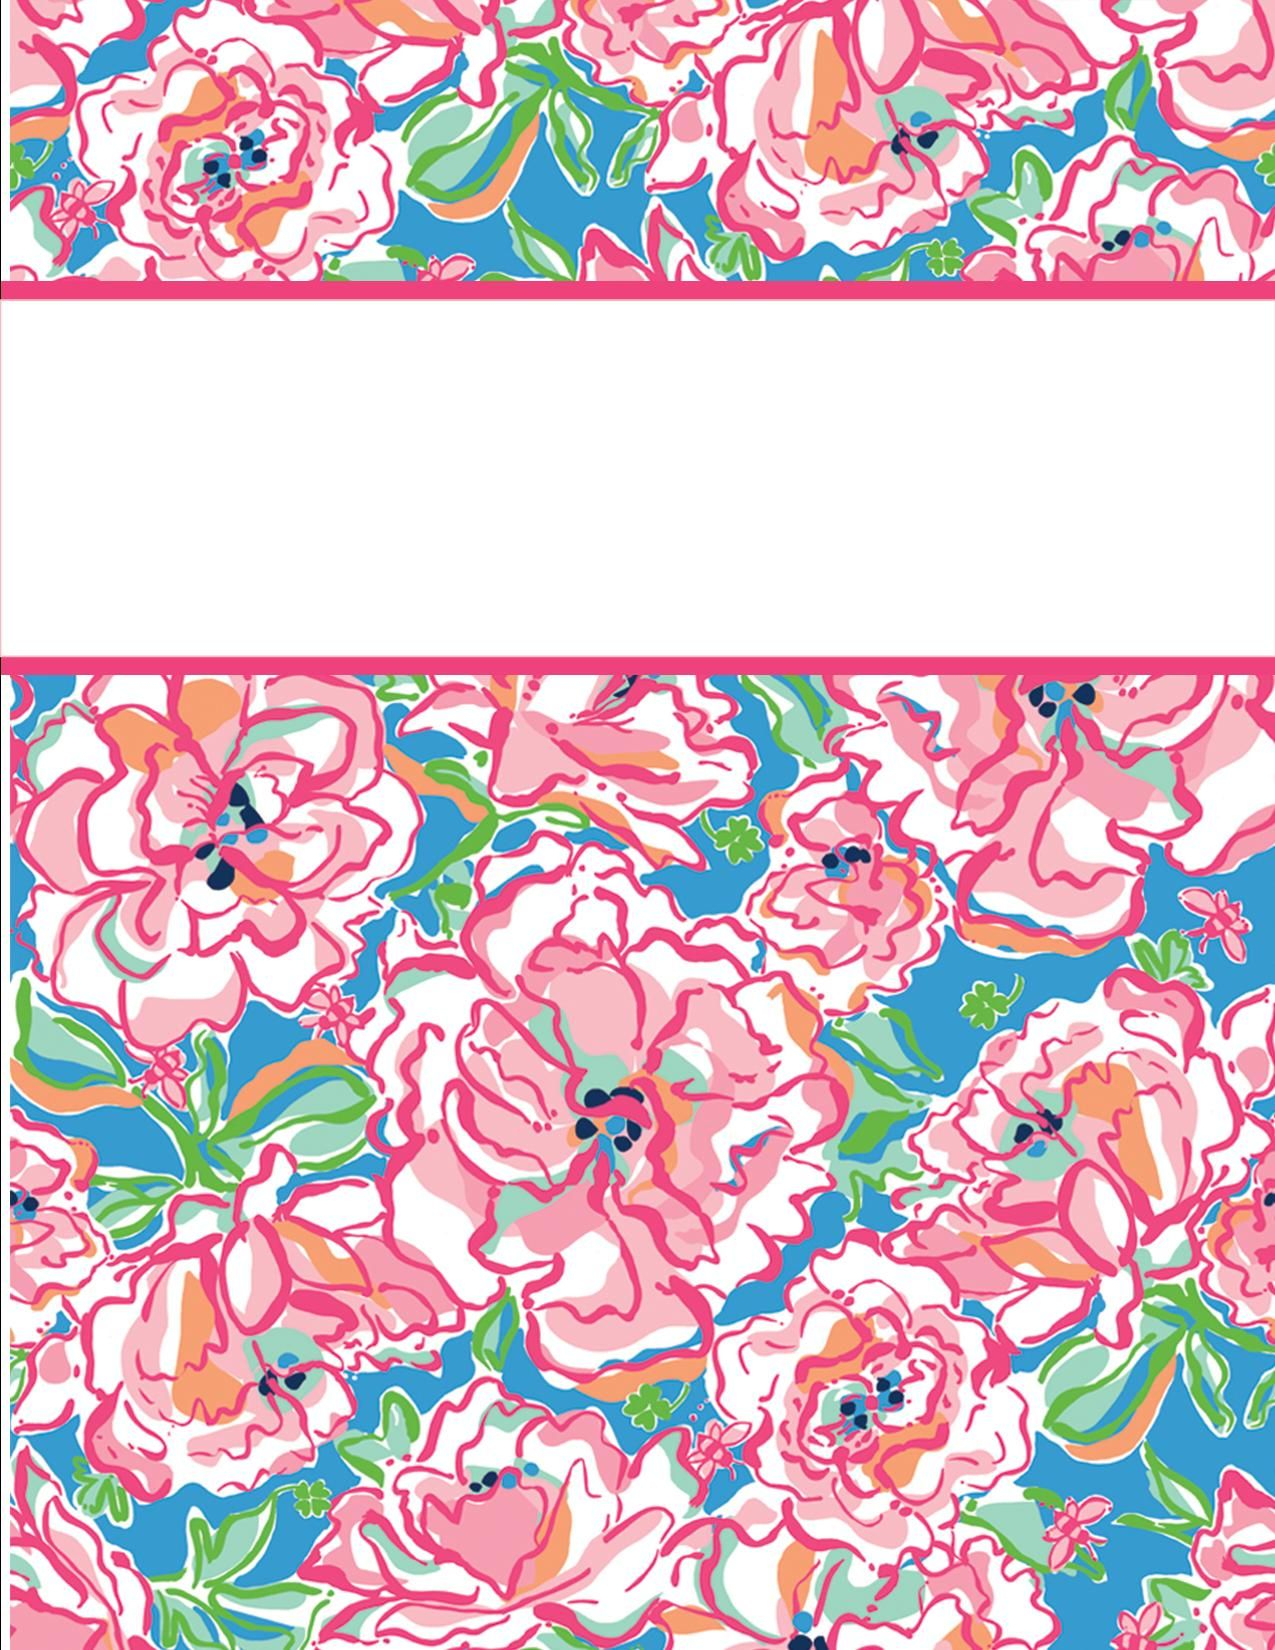 016 Free Printable Binder Cover Templates Template ~ Ulyssesroom - Free Printable Binder Cover Templates